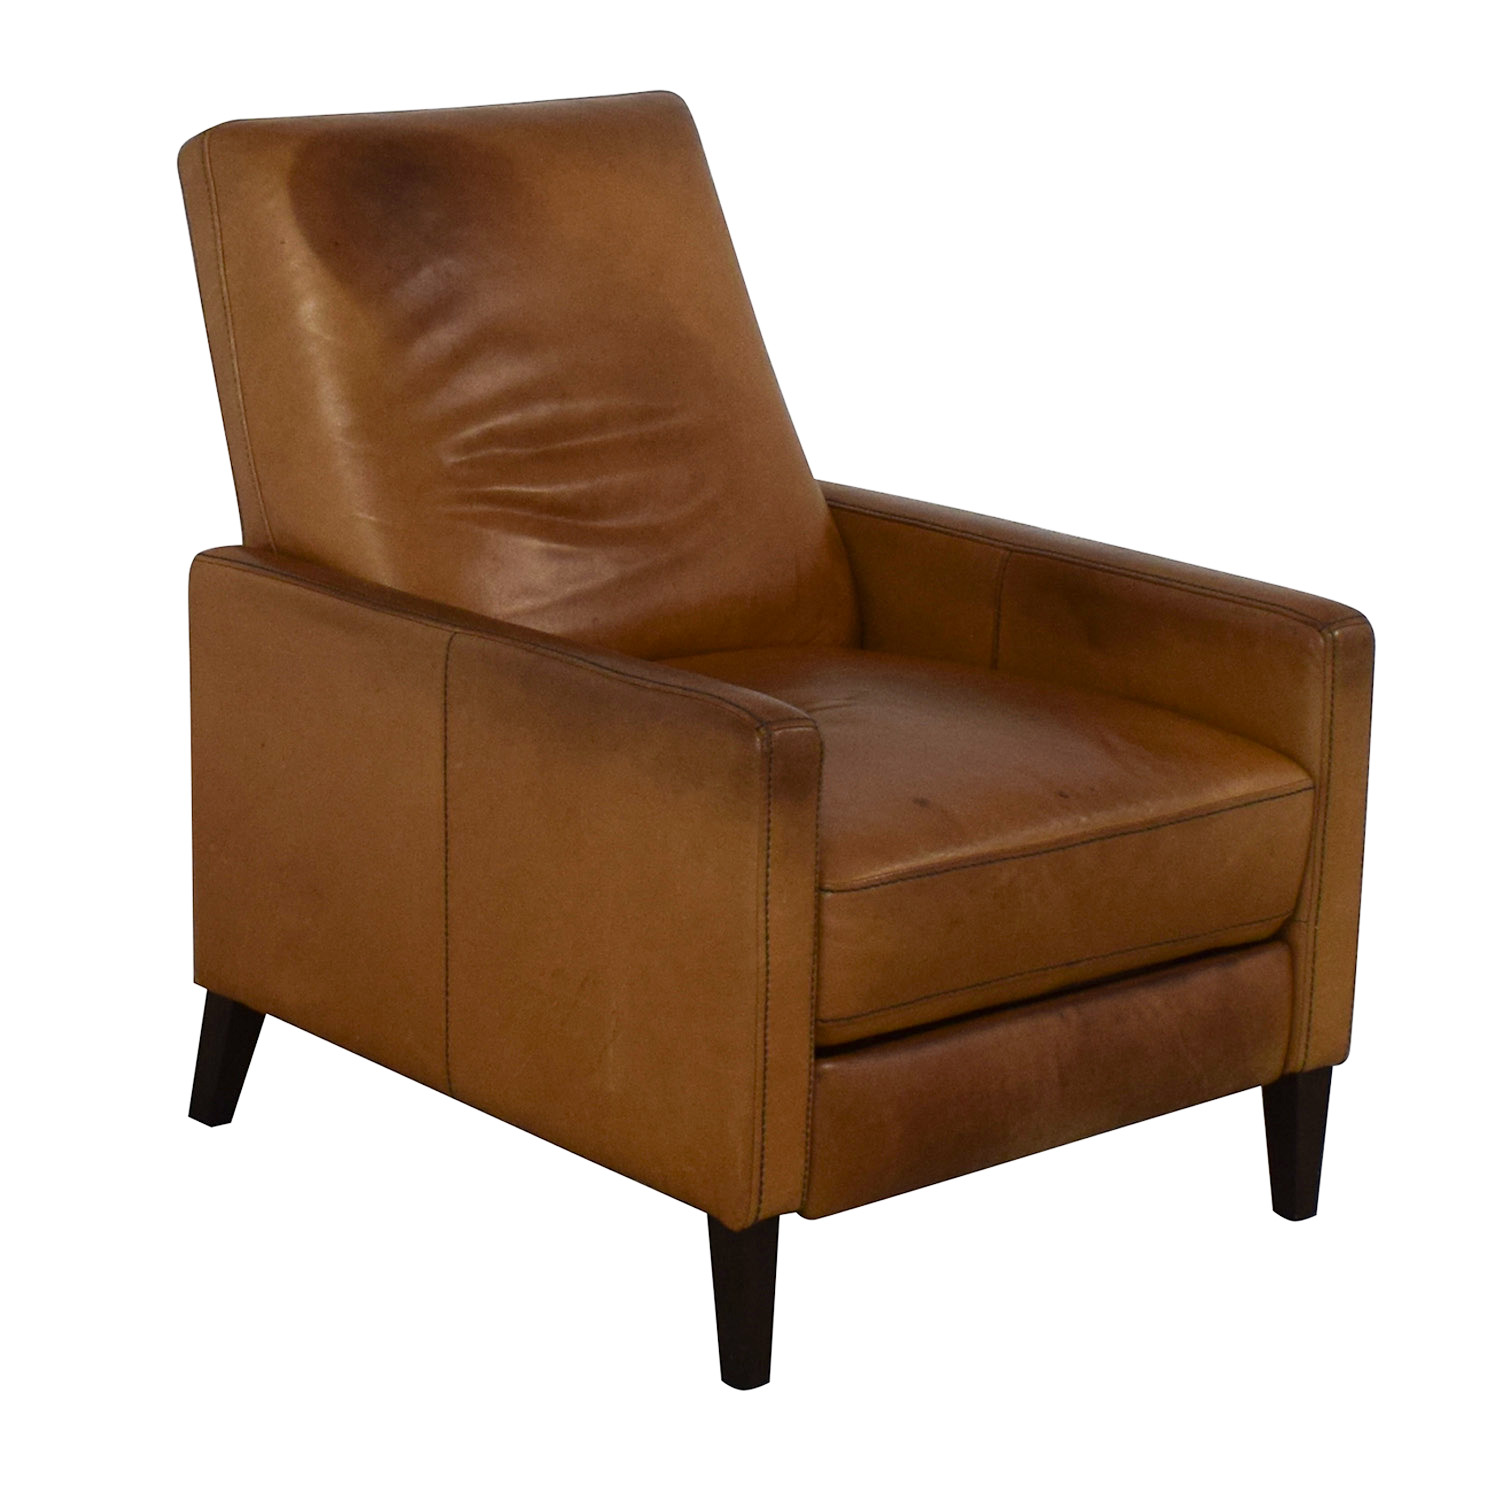 West Elm Reclining chair / Accent Chairs